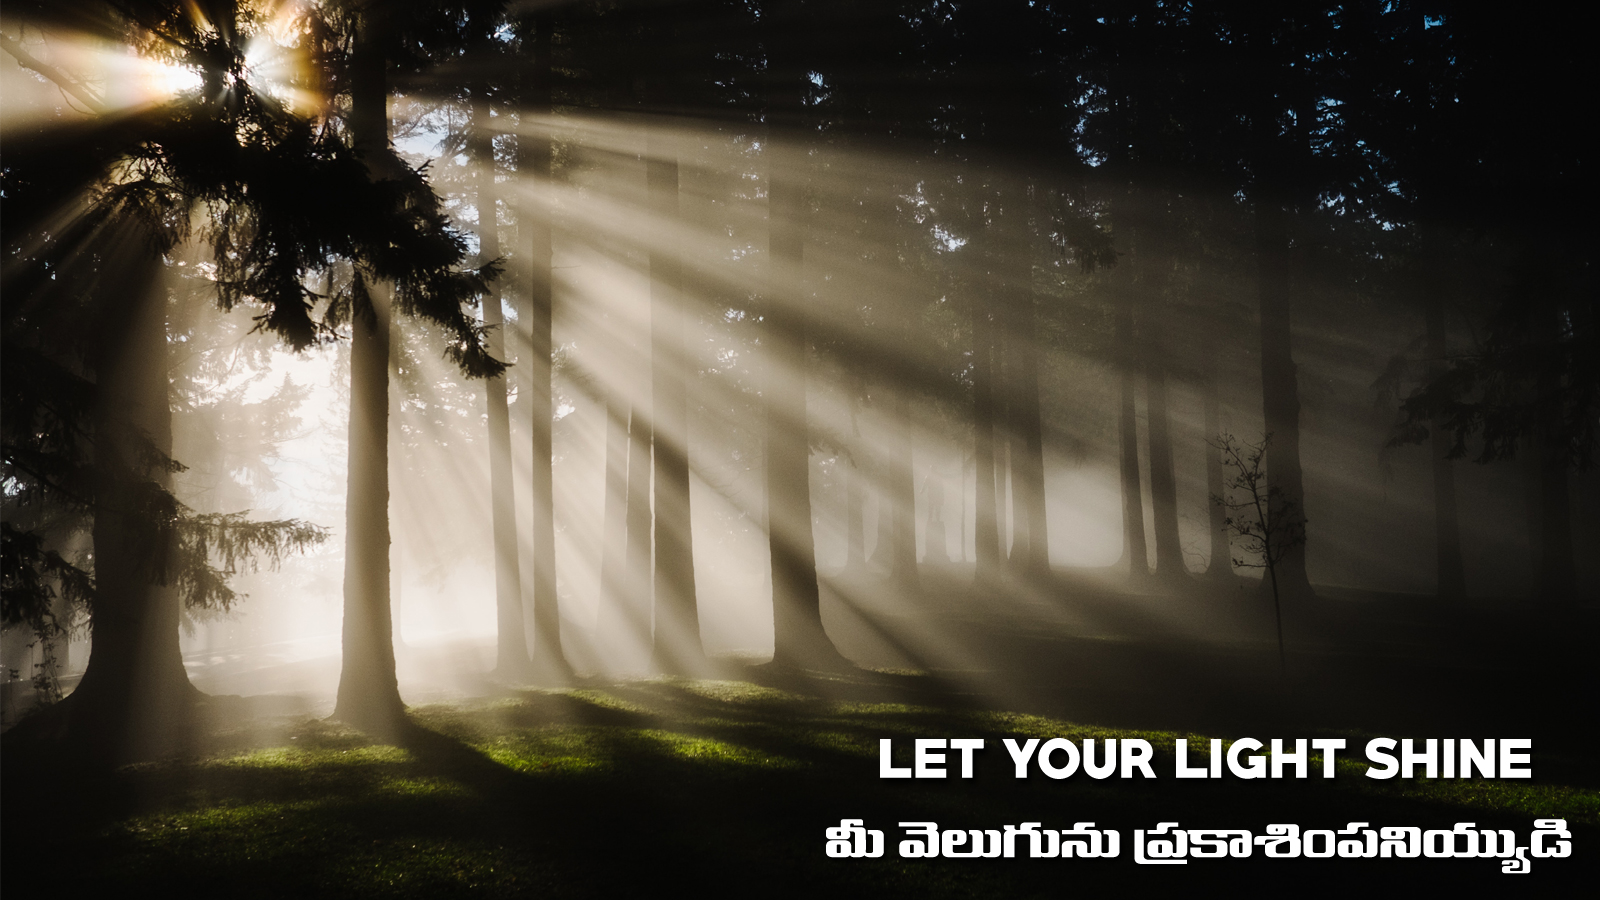 Let your Light Shine (A337)